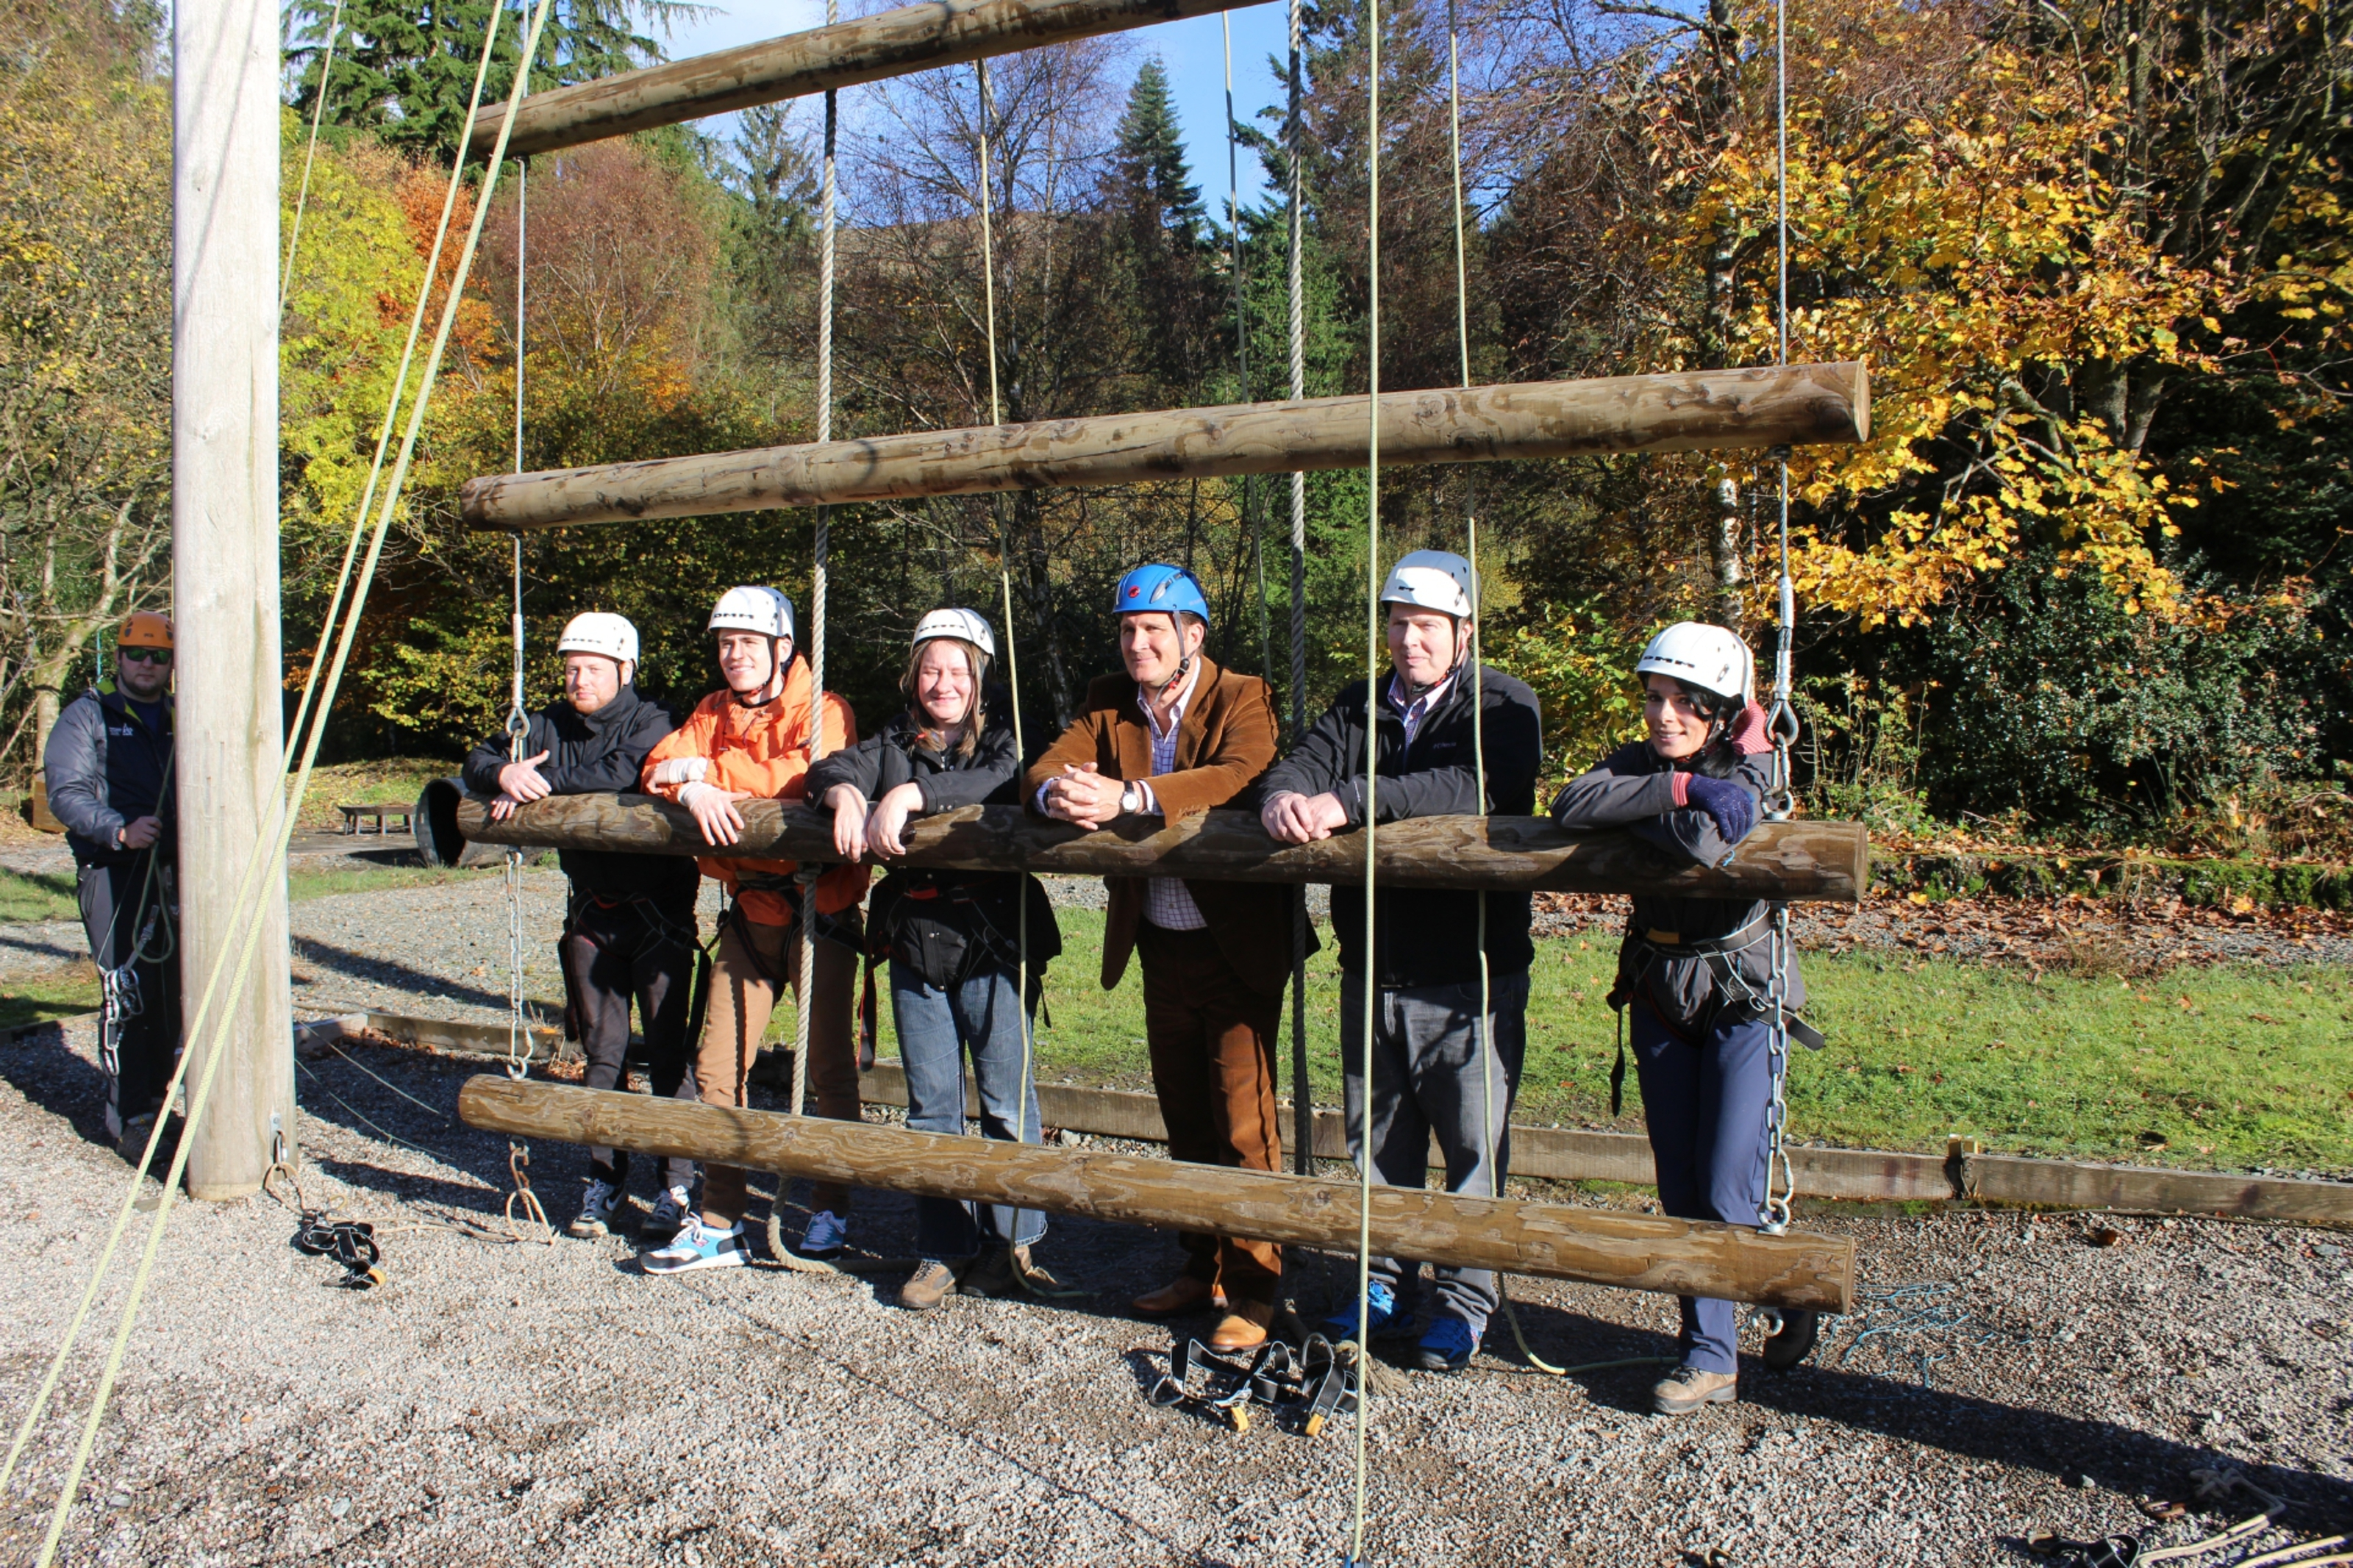 Gayle (far right) channels her inner Bear Grylls along with Scouts Scotland honorary president Chris Tiso (wearing blue helmet) and others.